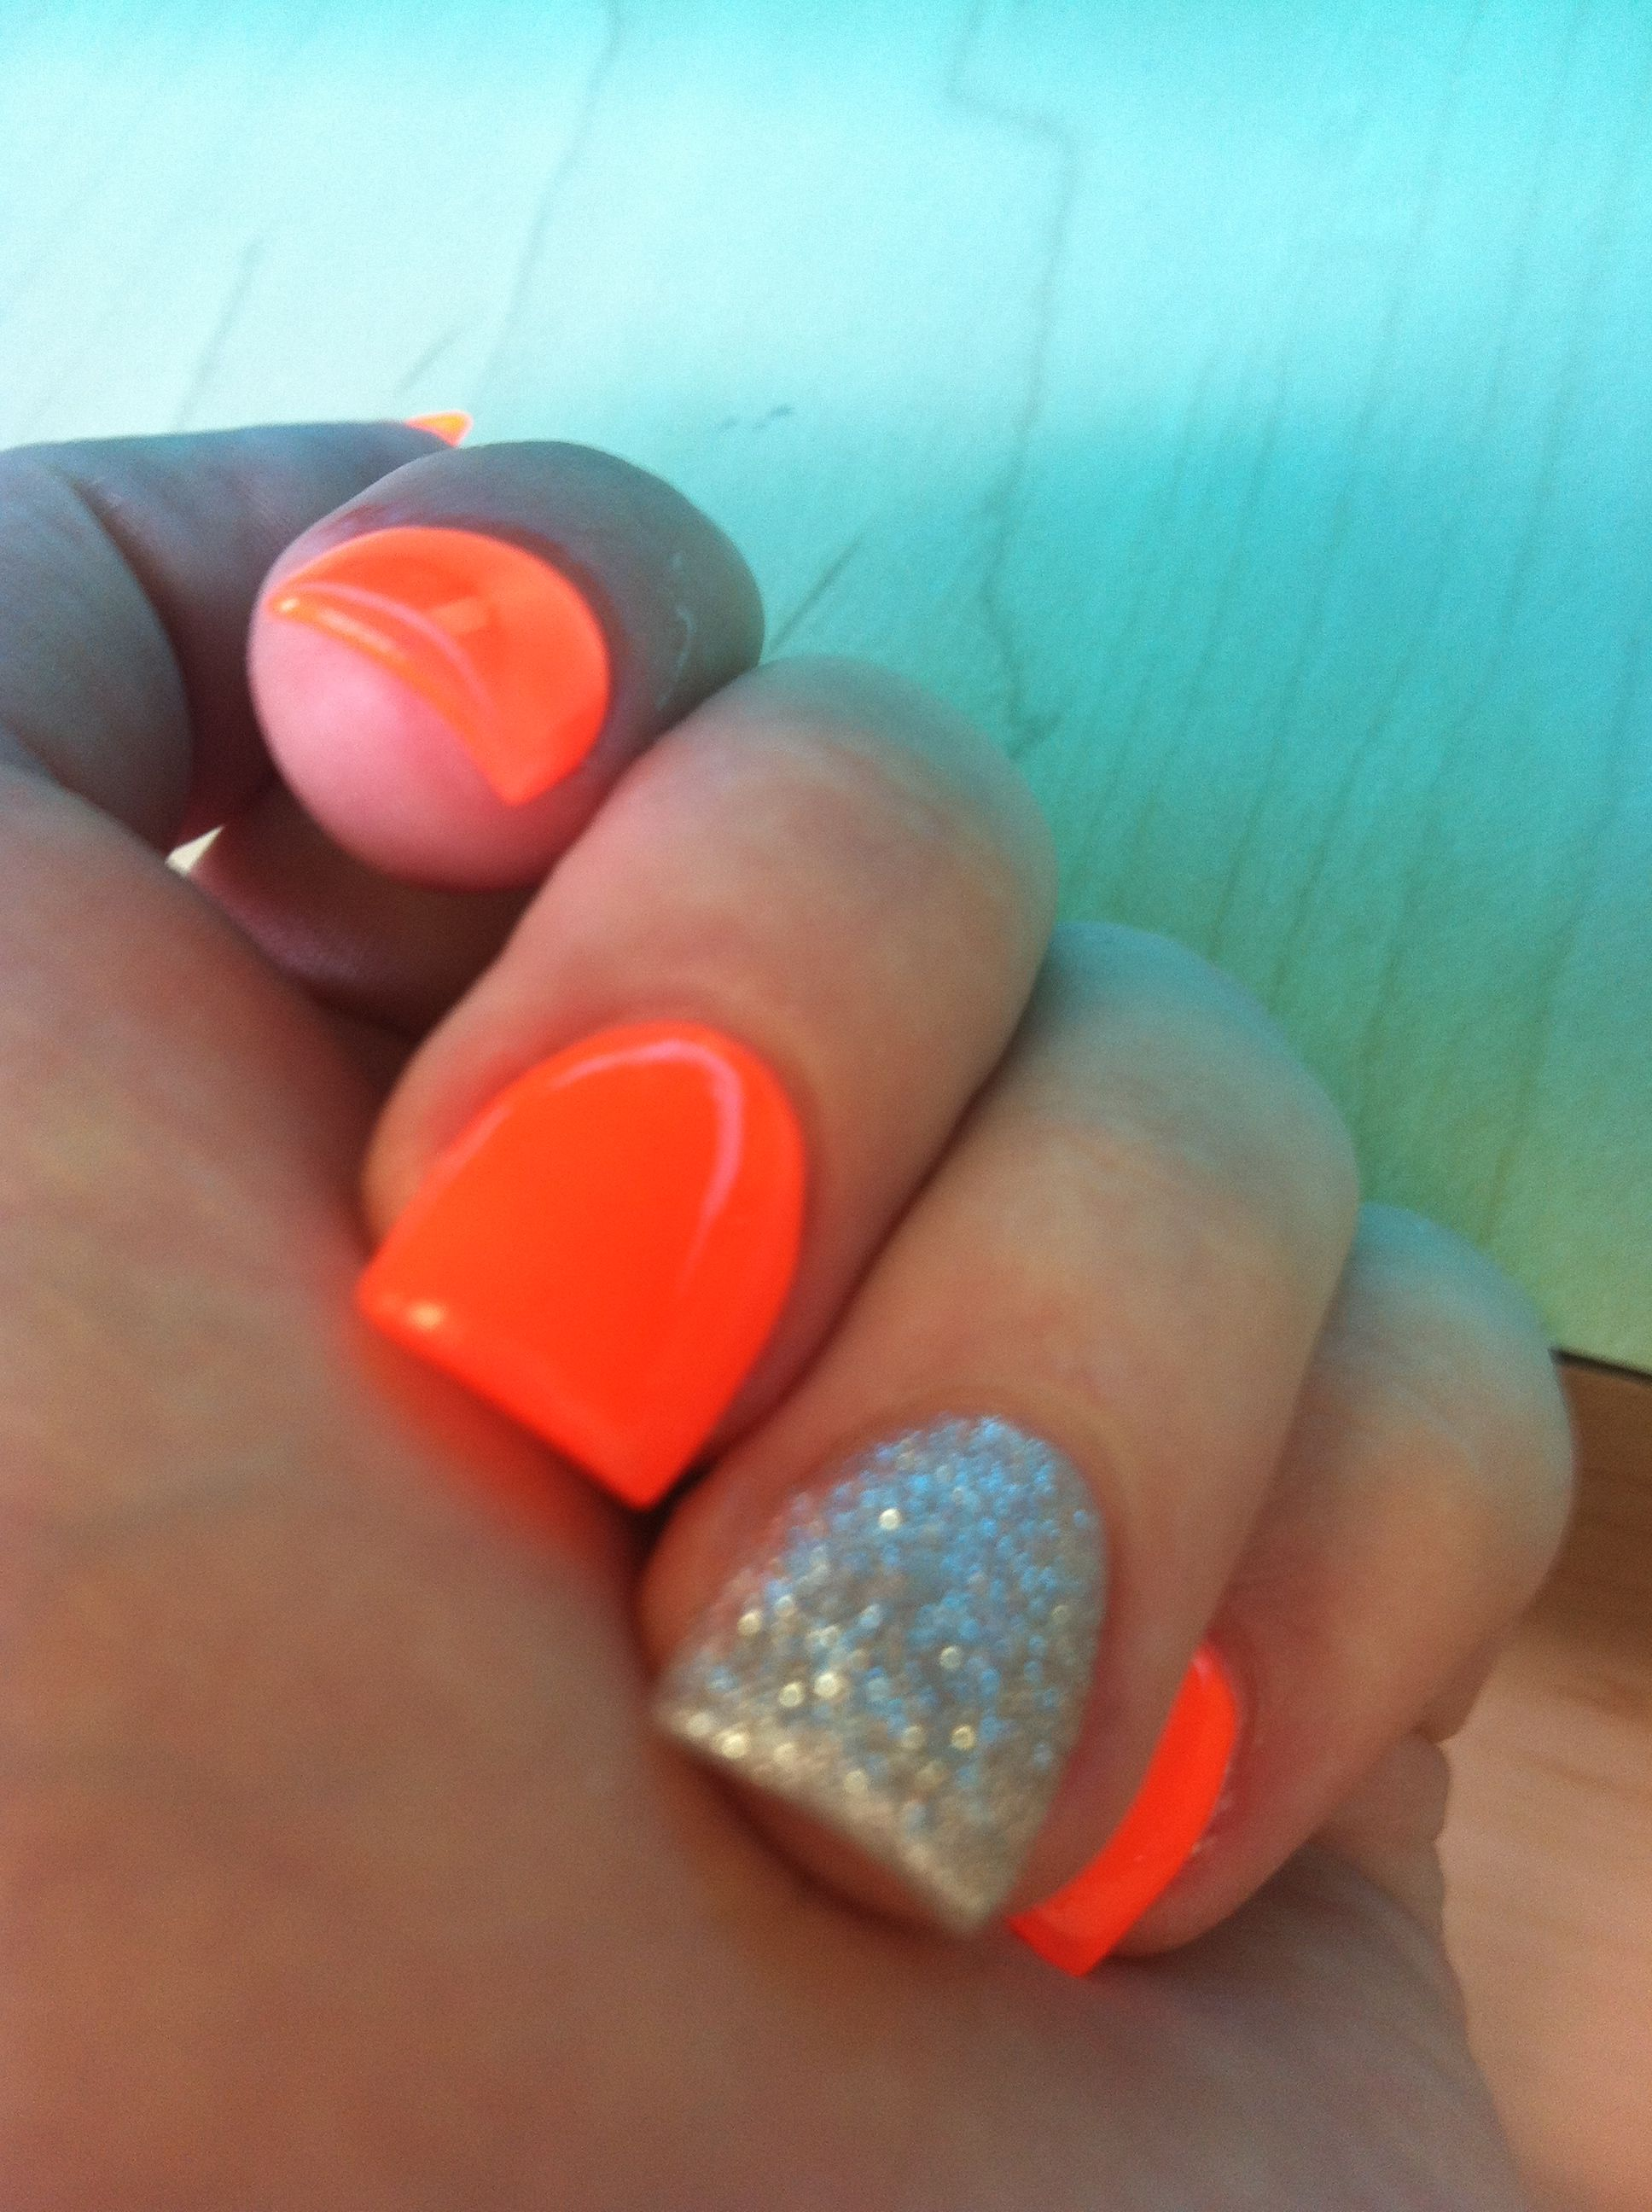 Places To Get Nails Done - Best Nail 2018